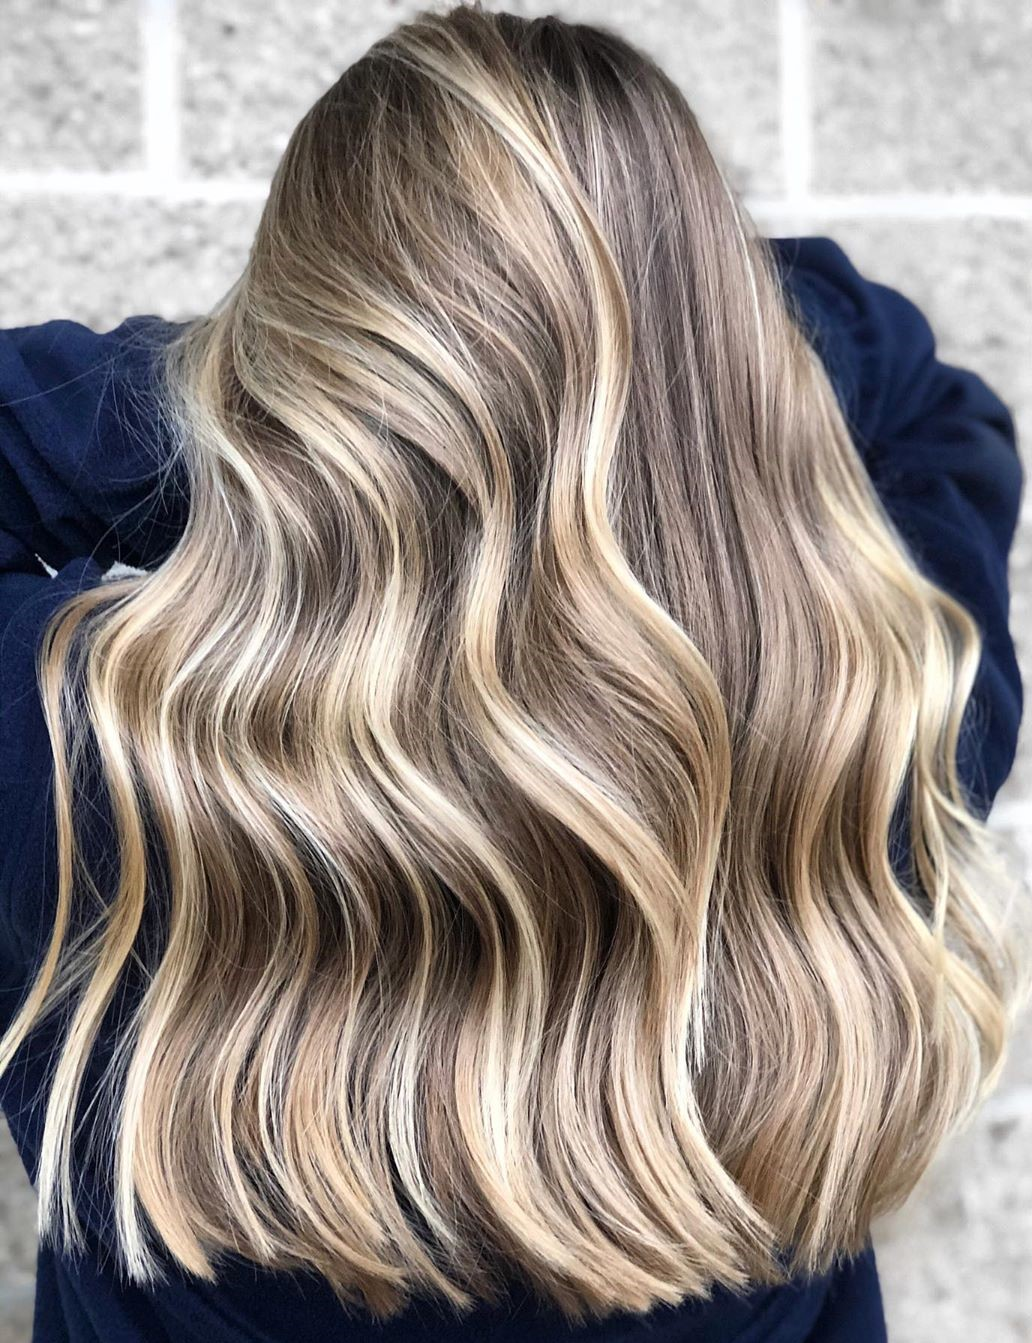 Brown Blonde Hair with Babylights